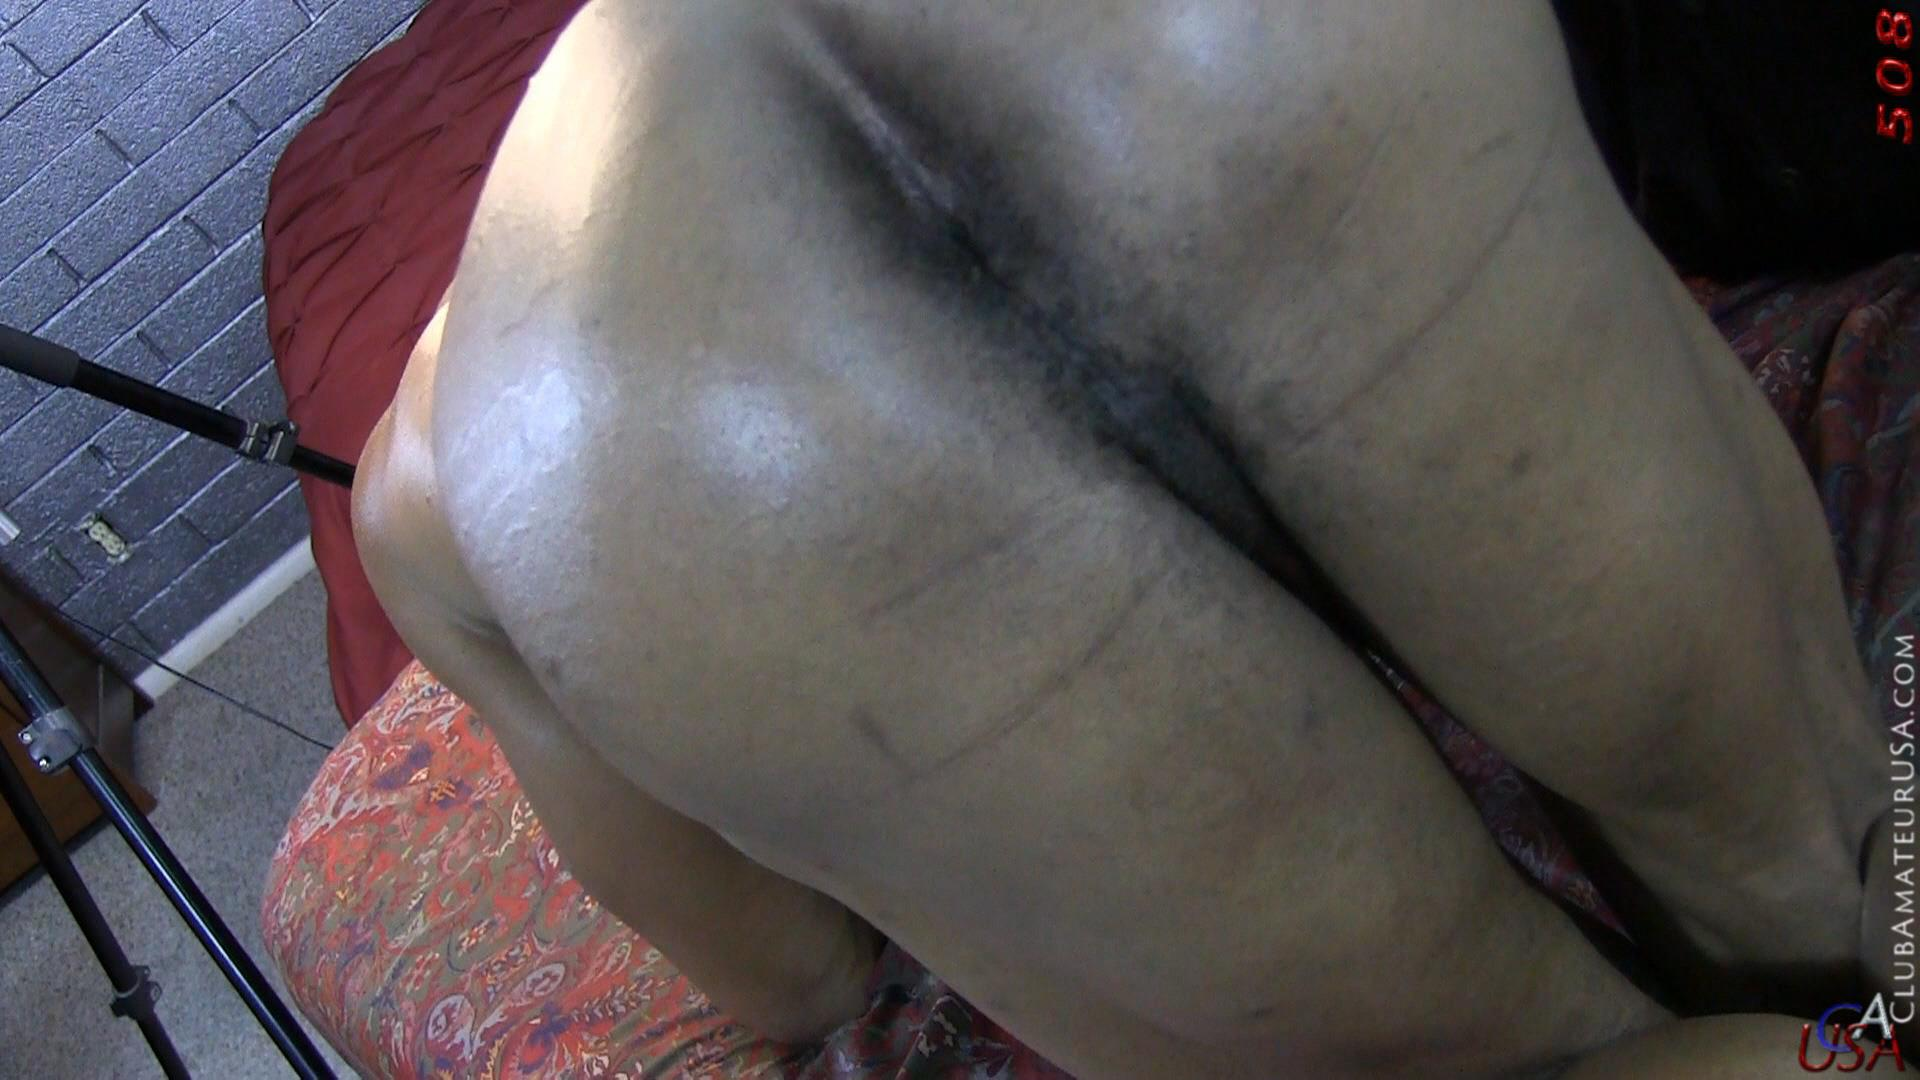 Club-Amateur-USA-Gracen-Straight-Big-Black-Cock-Getting-Sucked-With-Cum-Amateur-Gay-Porn-14 Straight Ghetto Thug Gets A Massage With A Happy Ending From A Guy